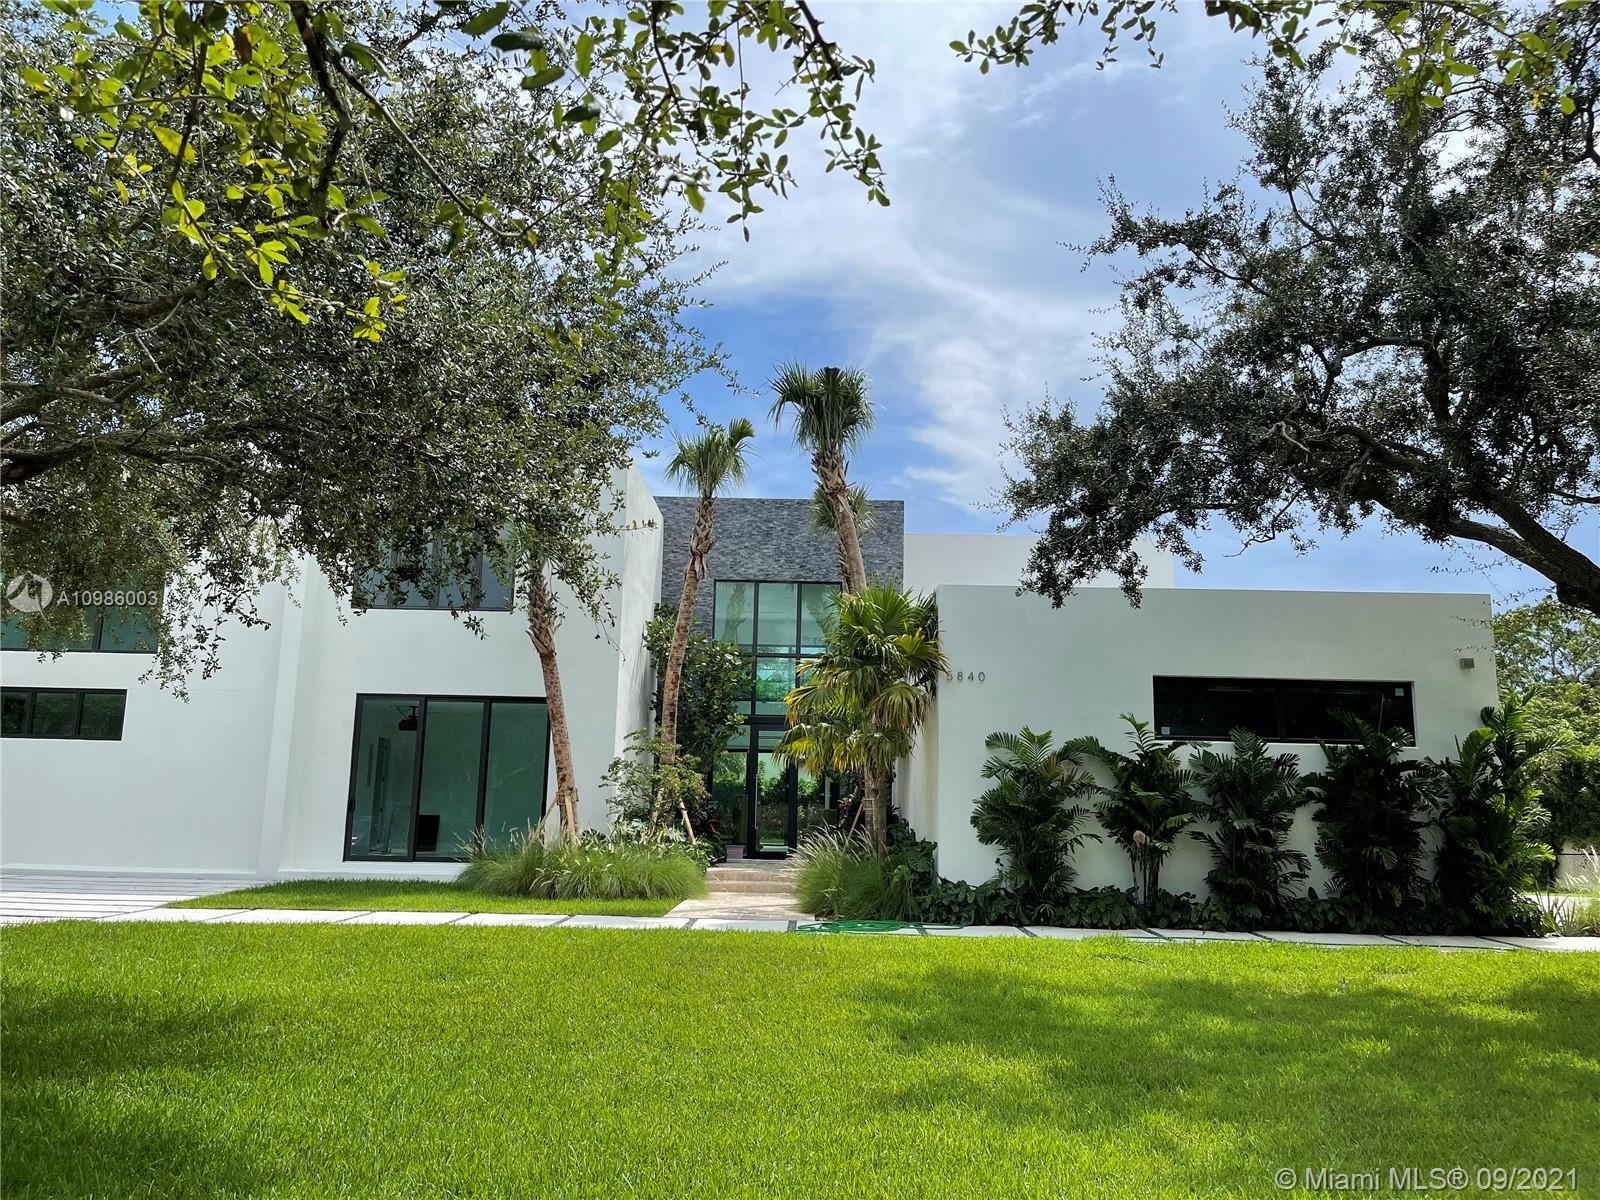 ~ SPECTACULAR CONTEMPORARY MODERN NEW CONSTRUCTION HOME ON QUIET STREET IN PREMIER PINECREST LOCATION ~ 6 BEDROOM / 6.5 BATHROOM WITH BONUS MEDIA ROOM & OFFICE ~ STUNNING ENTRY W/ ULTRA HIGH CEILINGS PROMOTES AN ABUNDANCE OF NATURAL LIGHT WHILE OVERLOOKING POOL & BACKYARD ~ OPEN KITCHEN W/ QUARTZ COUNTERTOPS, SUBZERO & VIKING APPLIANCES INCLUDING GAS COOKTOP OVEN ~ ITALIAN PORCELAIN FLOORS DOWNSTAIRS & WOOD FLOORS UPSTAIRS ~ GORGEOUS UPSTAIRS MASTER SUITE & BATH W/ HIS & HERS WALK-IN CLOSETS ~ UPSTAIRS INCLUDES 3 ADDITIONAL EN SUITE BEDROOMS &  TV AREA ~ CGI IMPACT GLASS WINDOWS & DOORS  ~ AMAZING OVERSIZED POOL ~ 2 COVERED TERRACES PERFECT FOR OUTDOOR ENTERTAINING ~ TOP NOTCH PUBLIC & PRIVATE SCHOOLS IN CLOSE PROXIMITY ~ EXPECTED COMPLETION APRIL 2021 ~